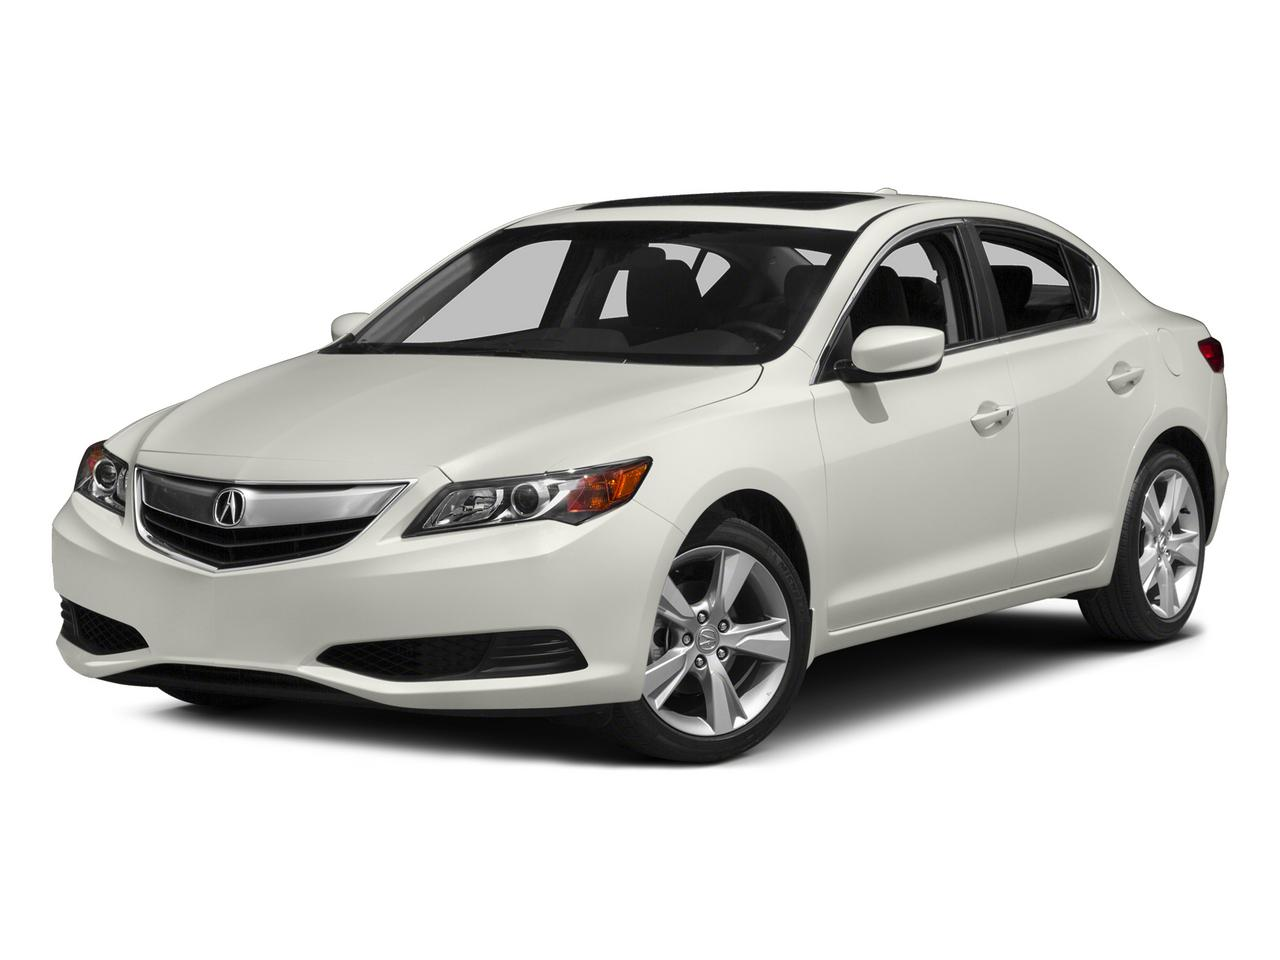 2015 Acura ILX Vehicle Photo in Bowie, MD 20716